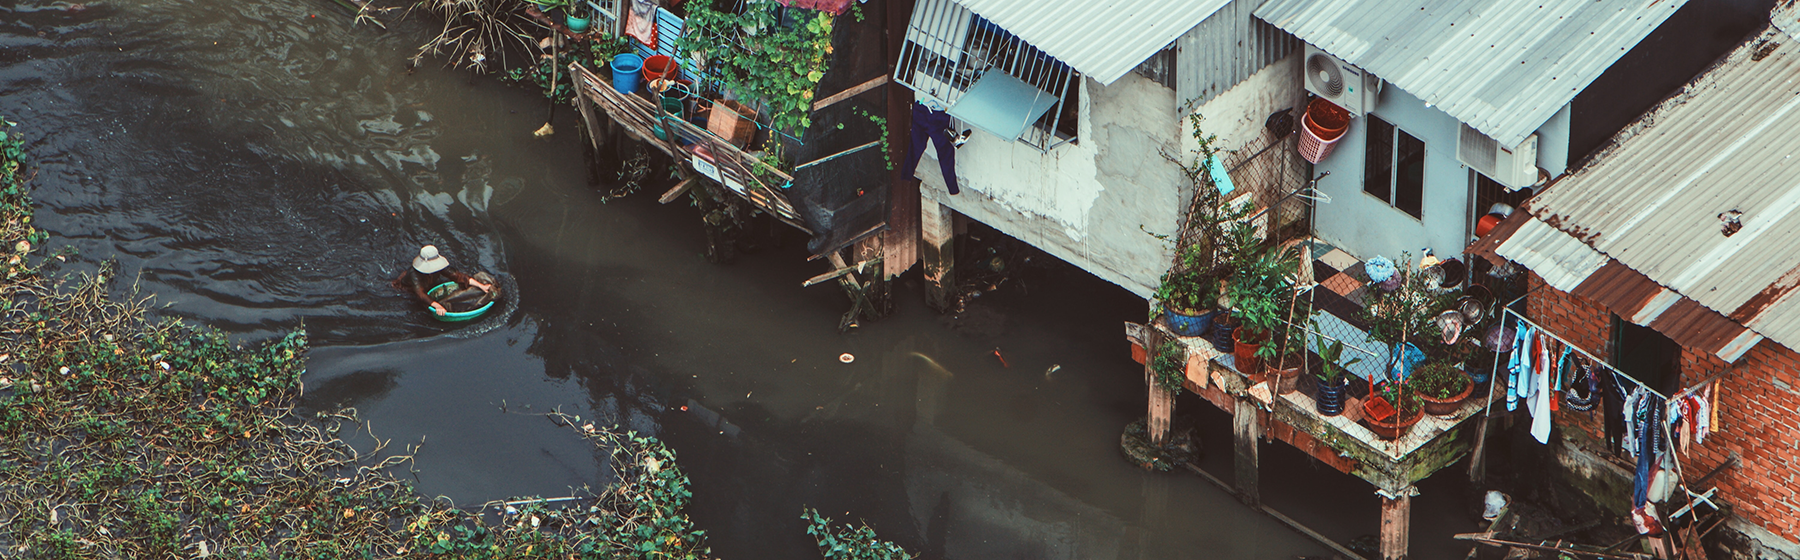 A person swims in a river that is flanked by houses with tin roofs.